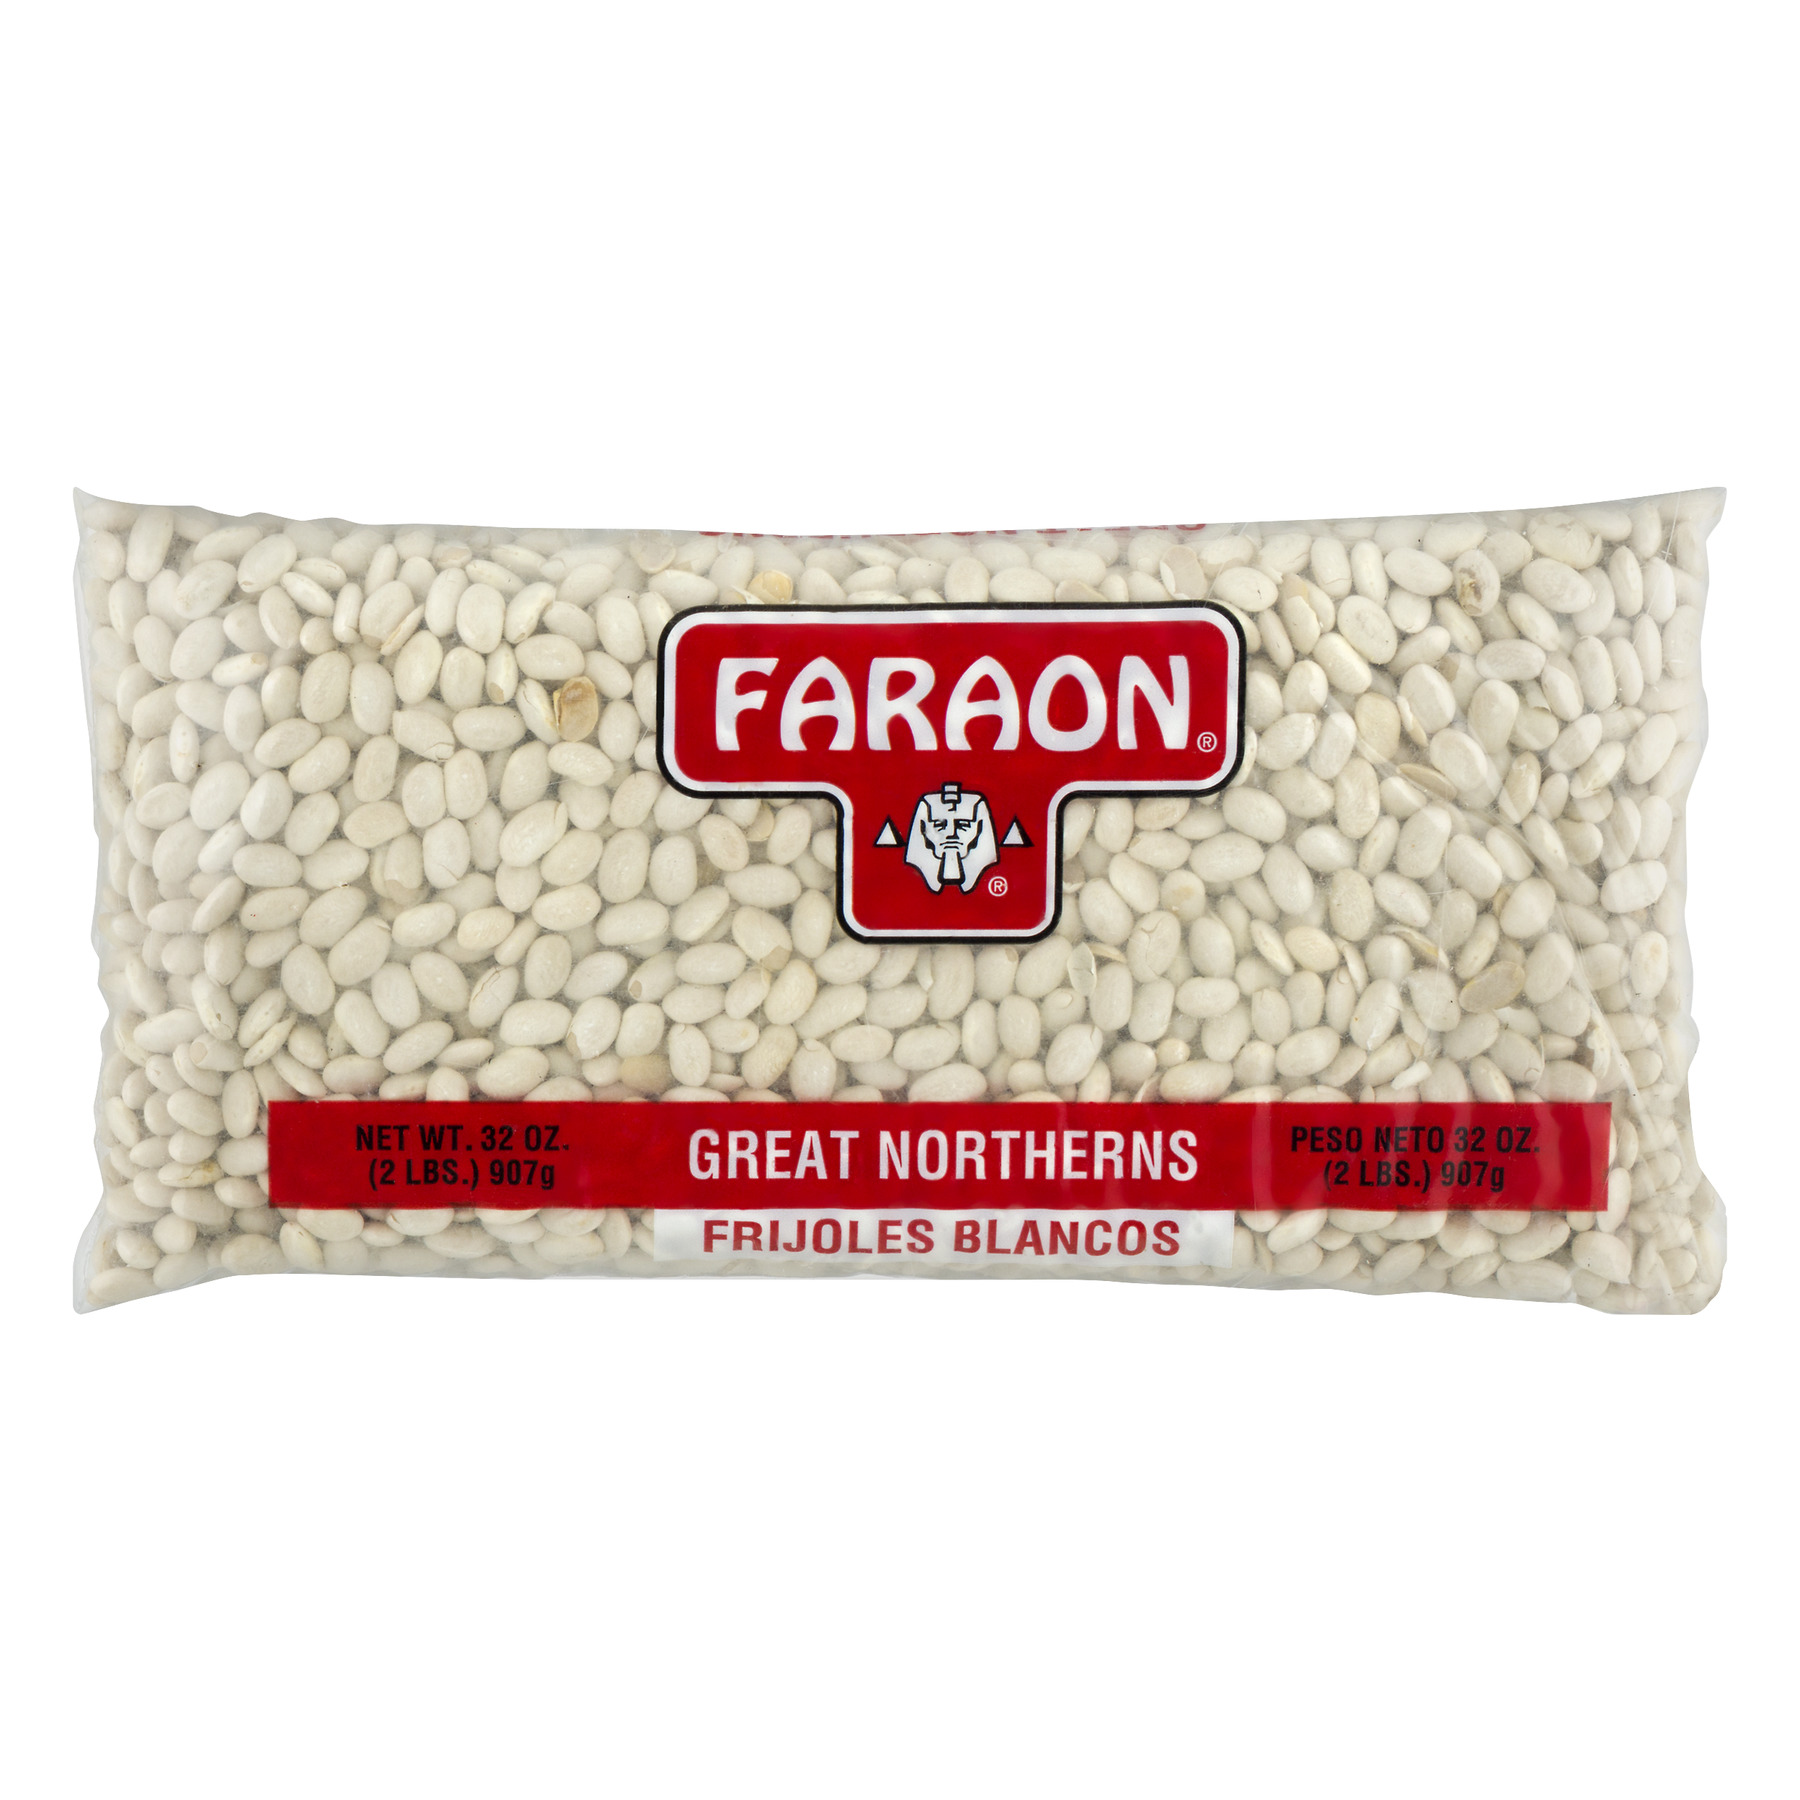 (2 Pack) Faraon Great Northerns, 32.0 OZ